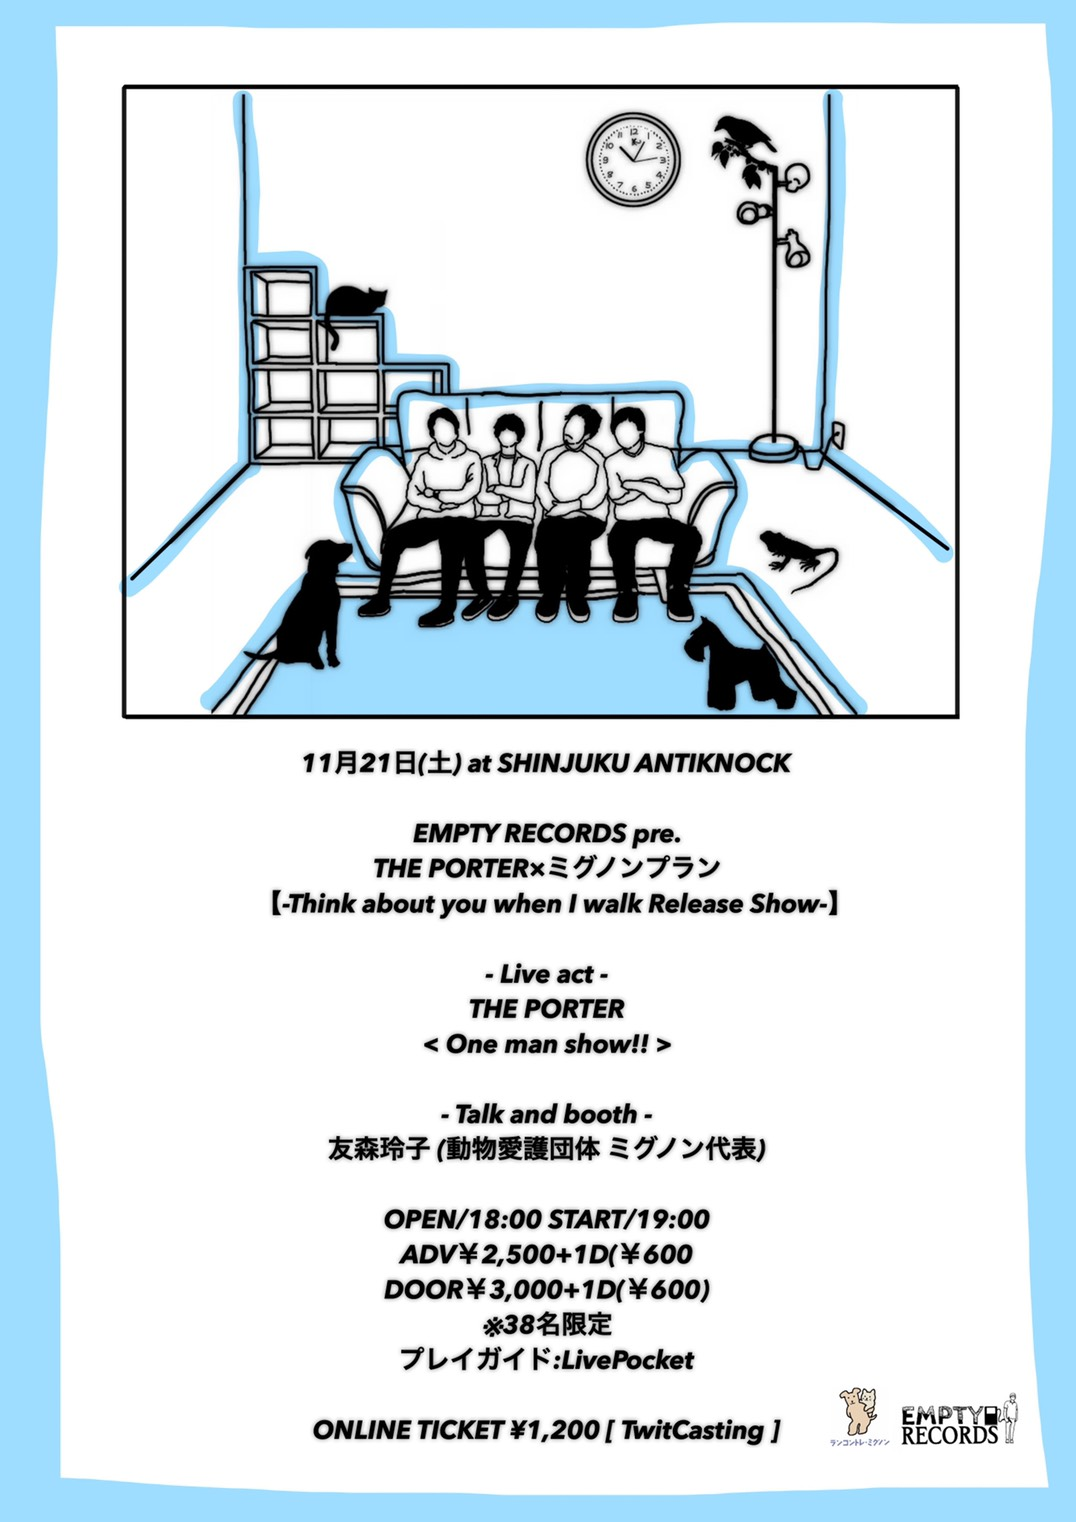 【THE PORTER×ミグノンプラン   -Think about you when I walk Release Show-】